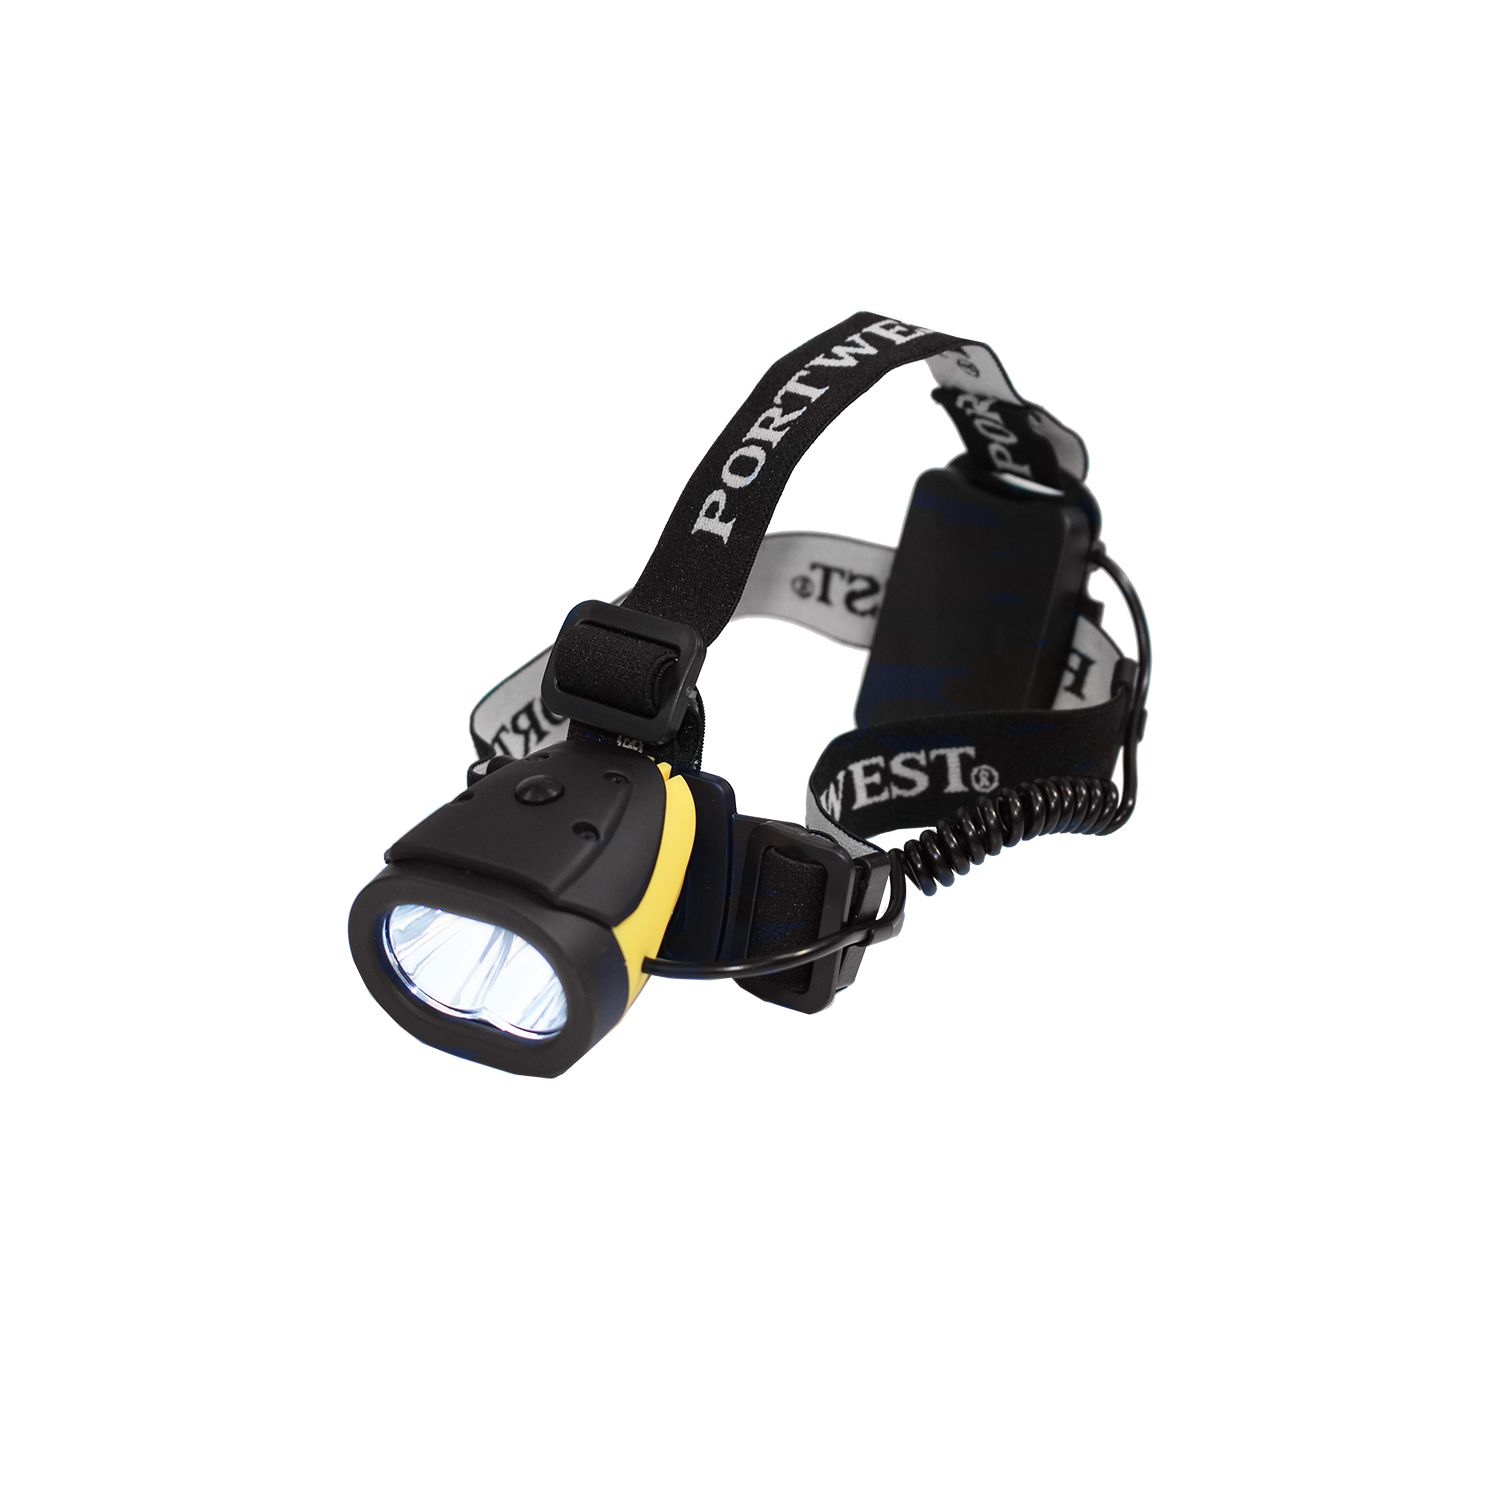 portwest PA63 Dual Power Head Light